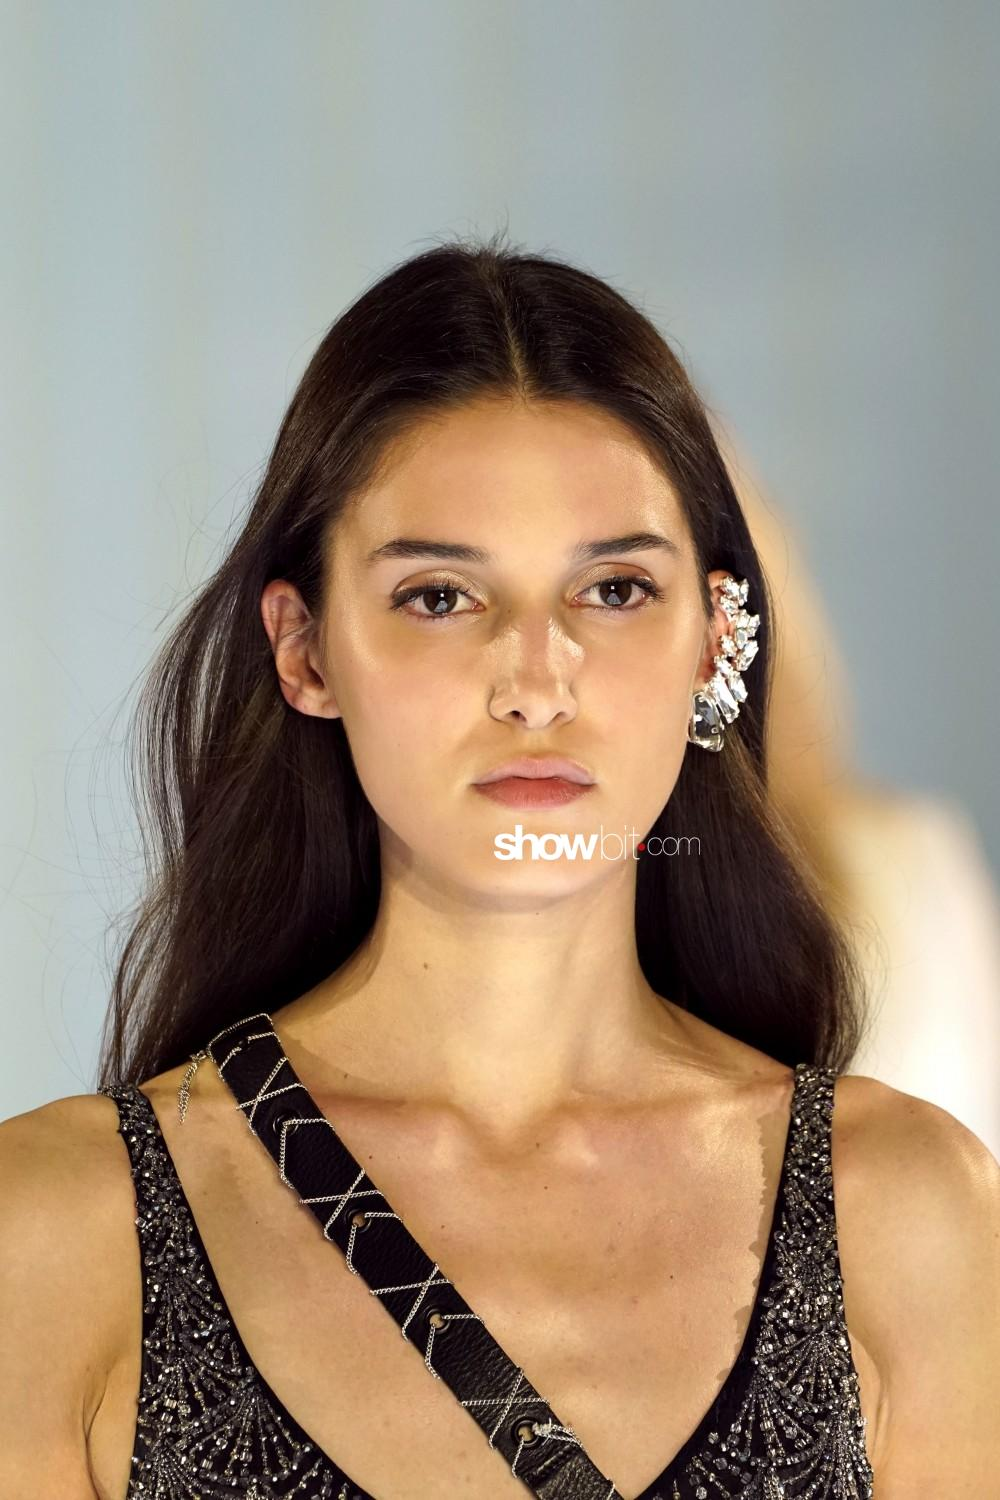 Azzaro beauty Haute Couture Fall Winter 2019 2020 Paris